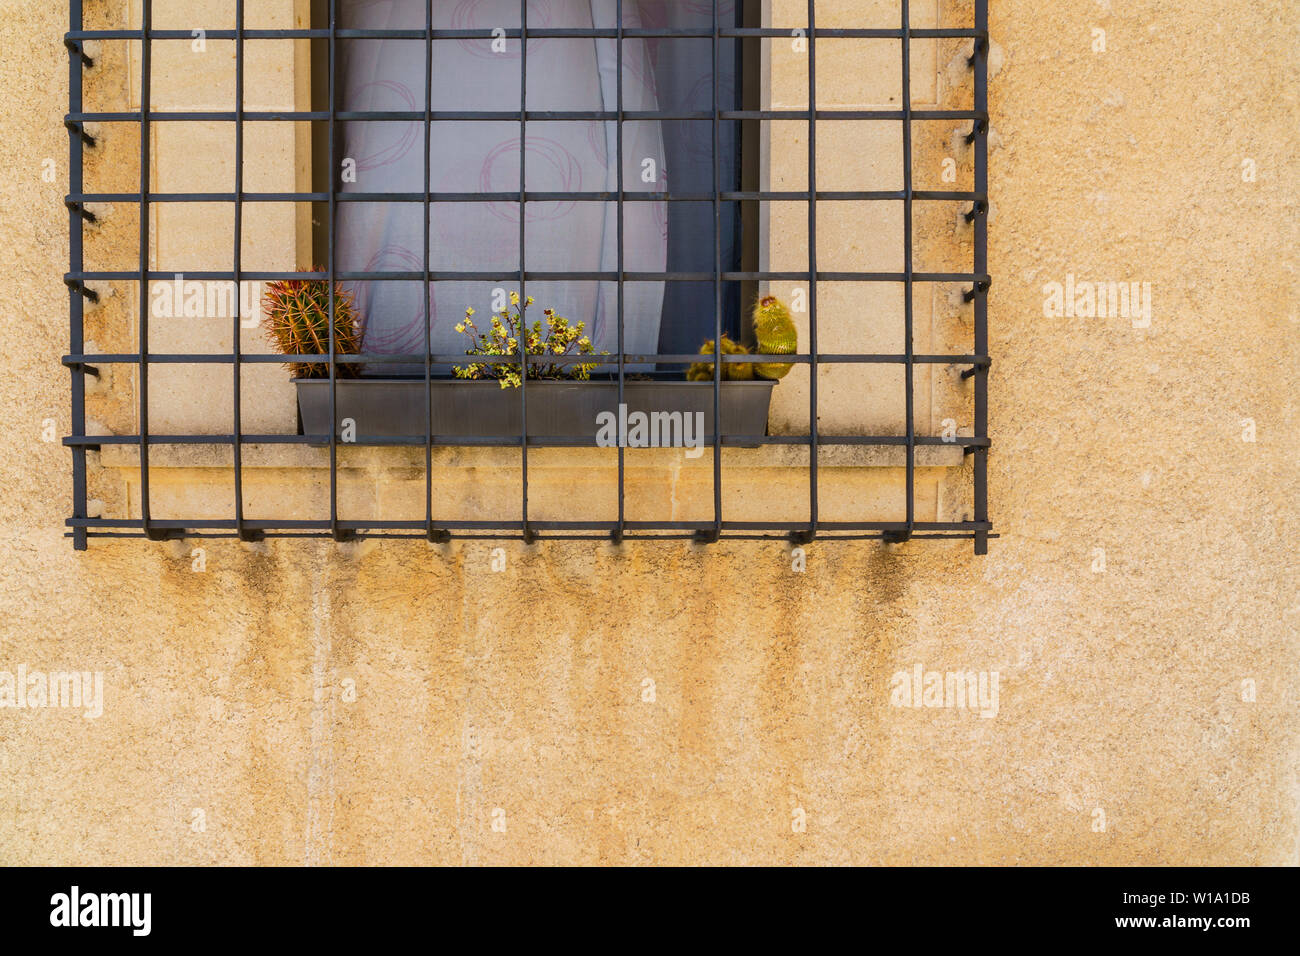 Two cacti and small yellow flowers planted in a row in a gray plant pot behind a metal window grille on an orange house wall with one window. water tr - Stock Image